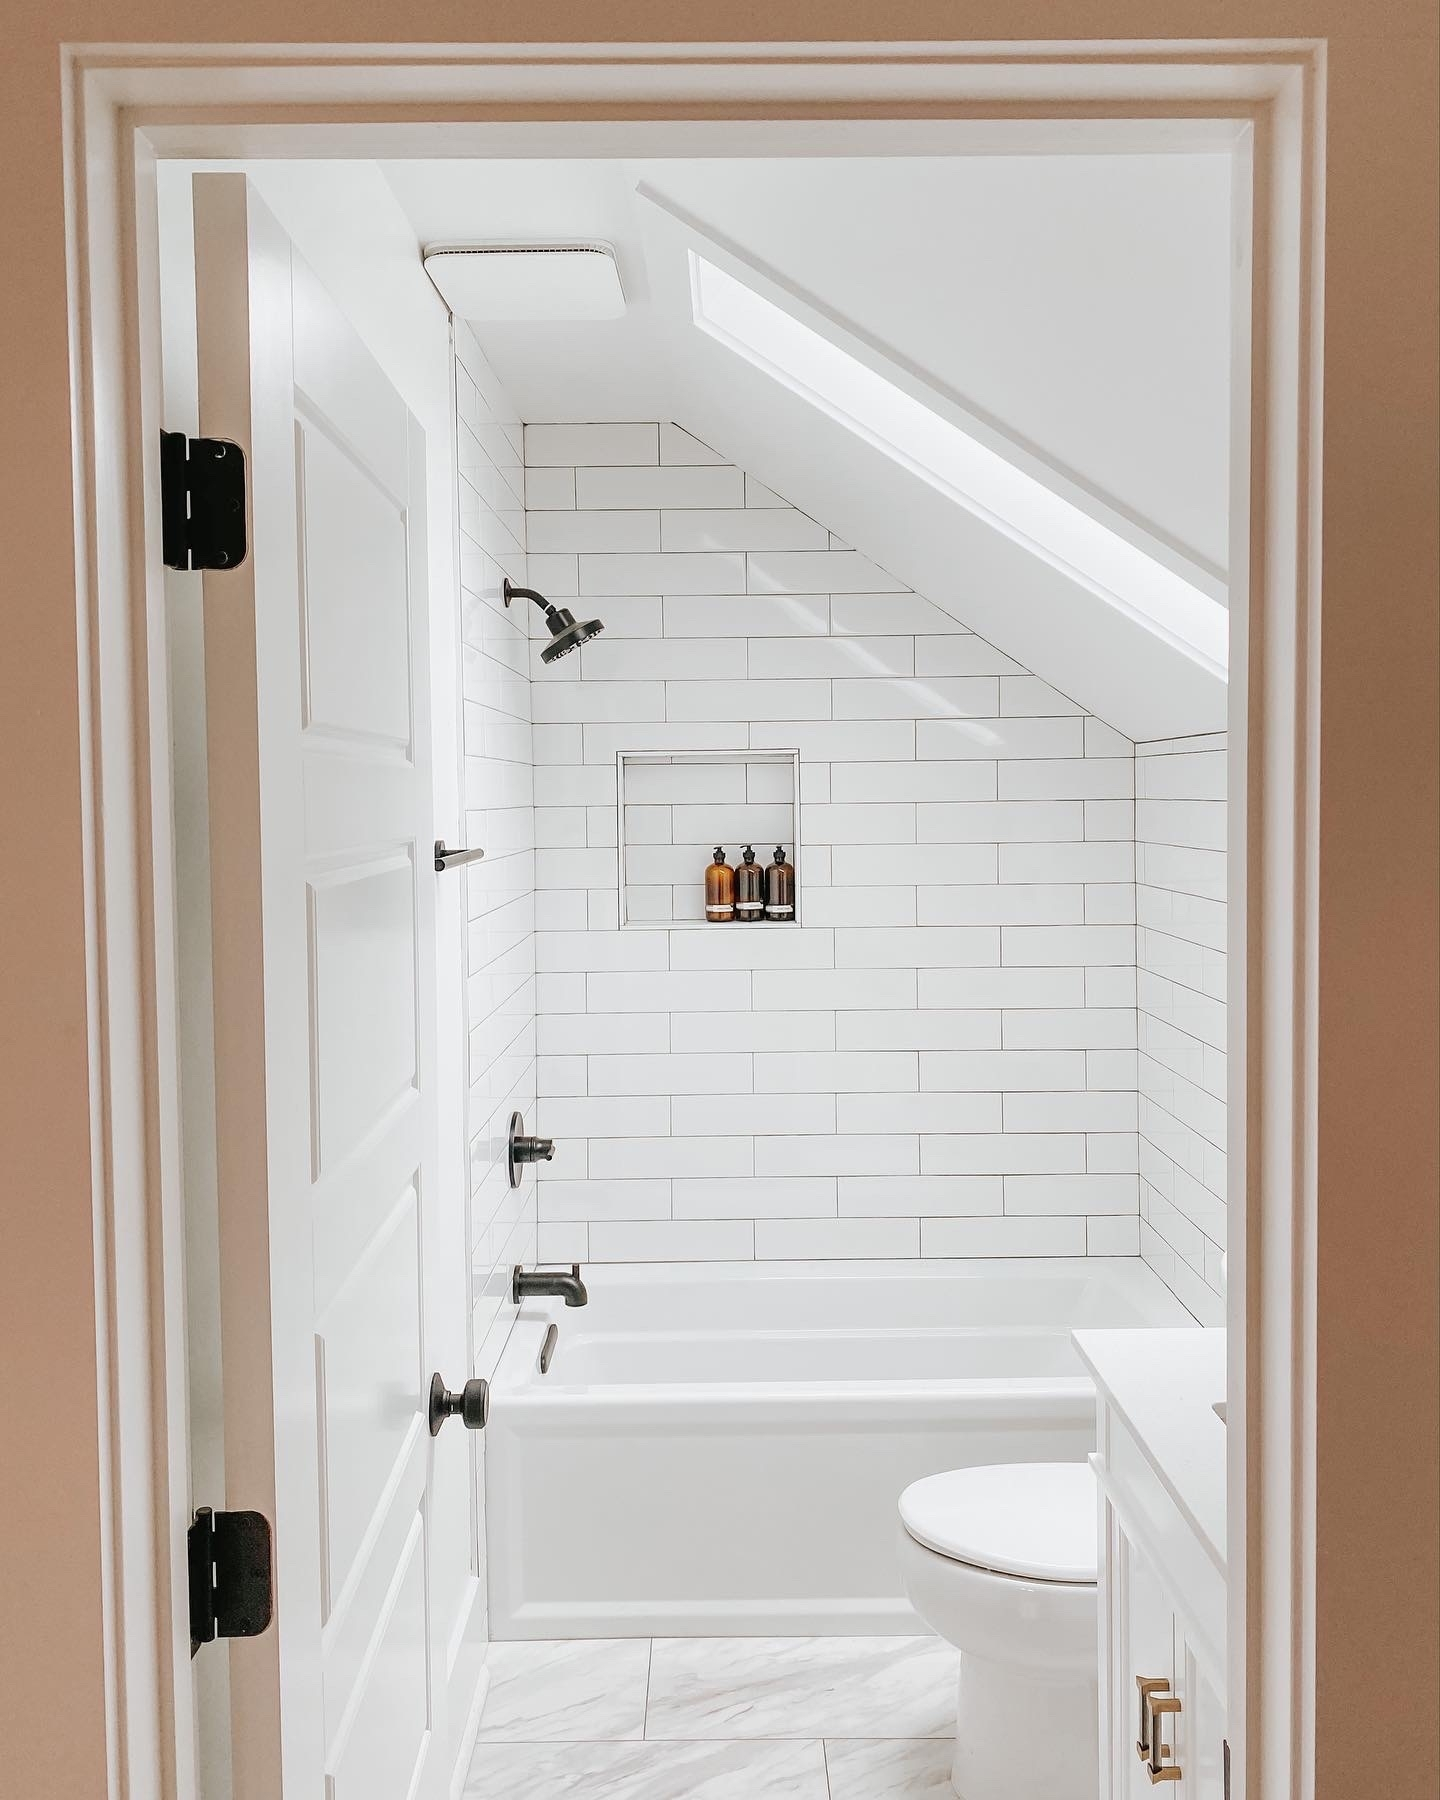 Upstairs Bathroom Reveal — Lucky Andi 20+ Small Bathroom With Sloped Ceiling Ideas